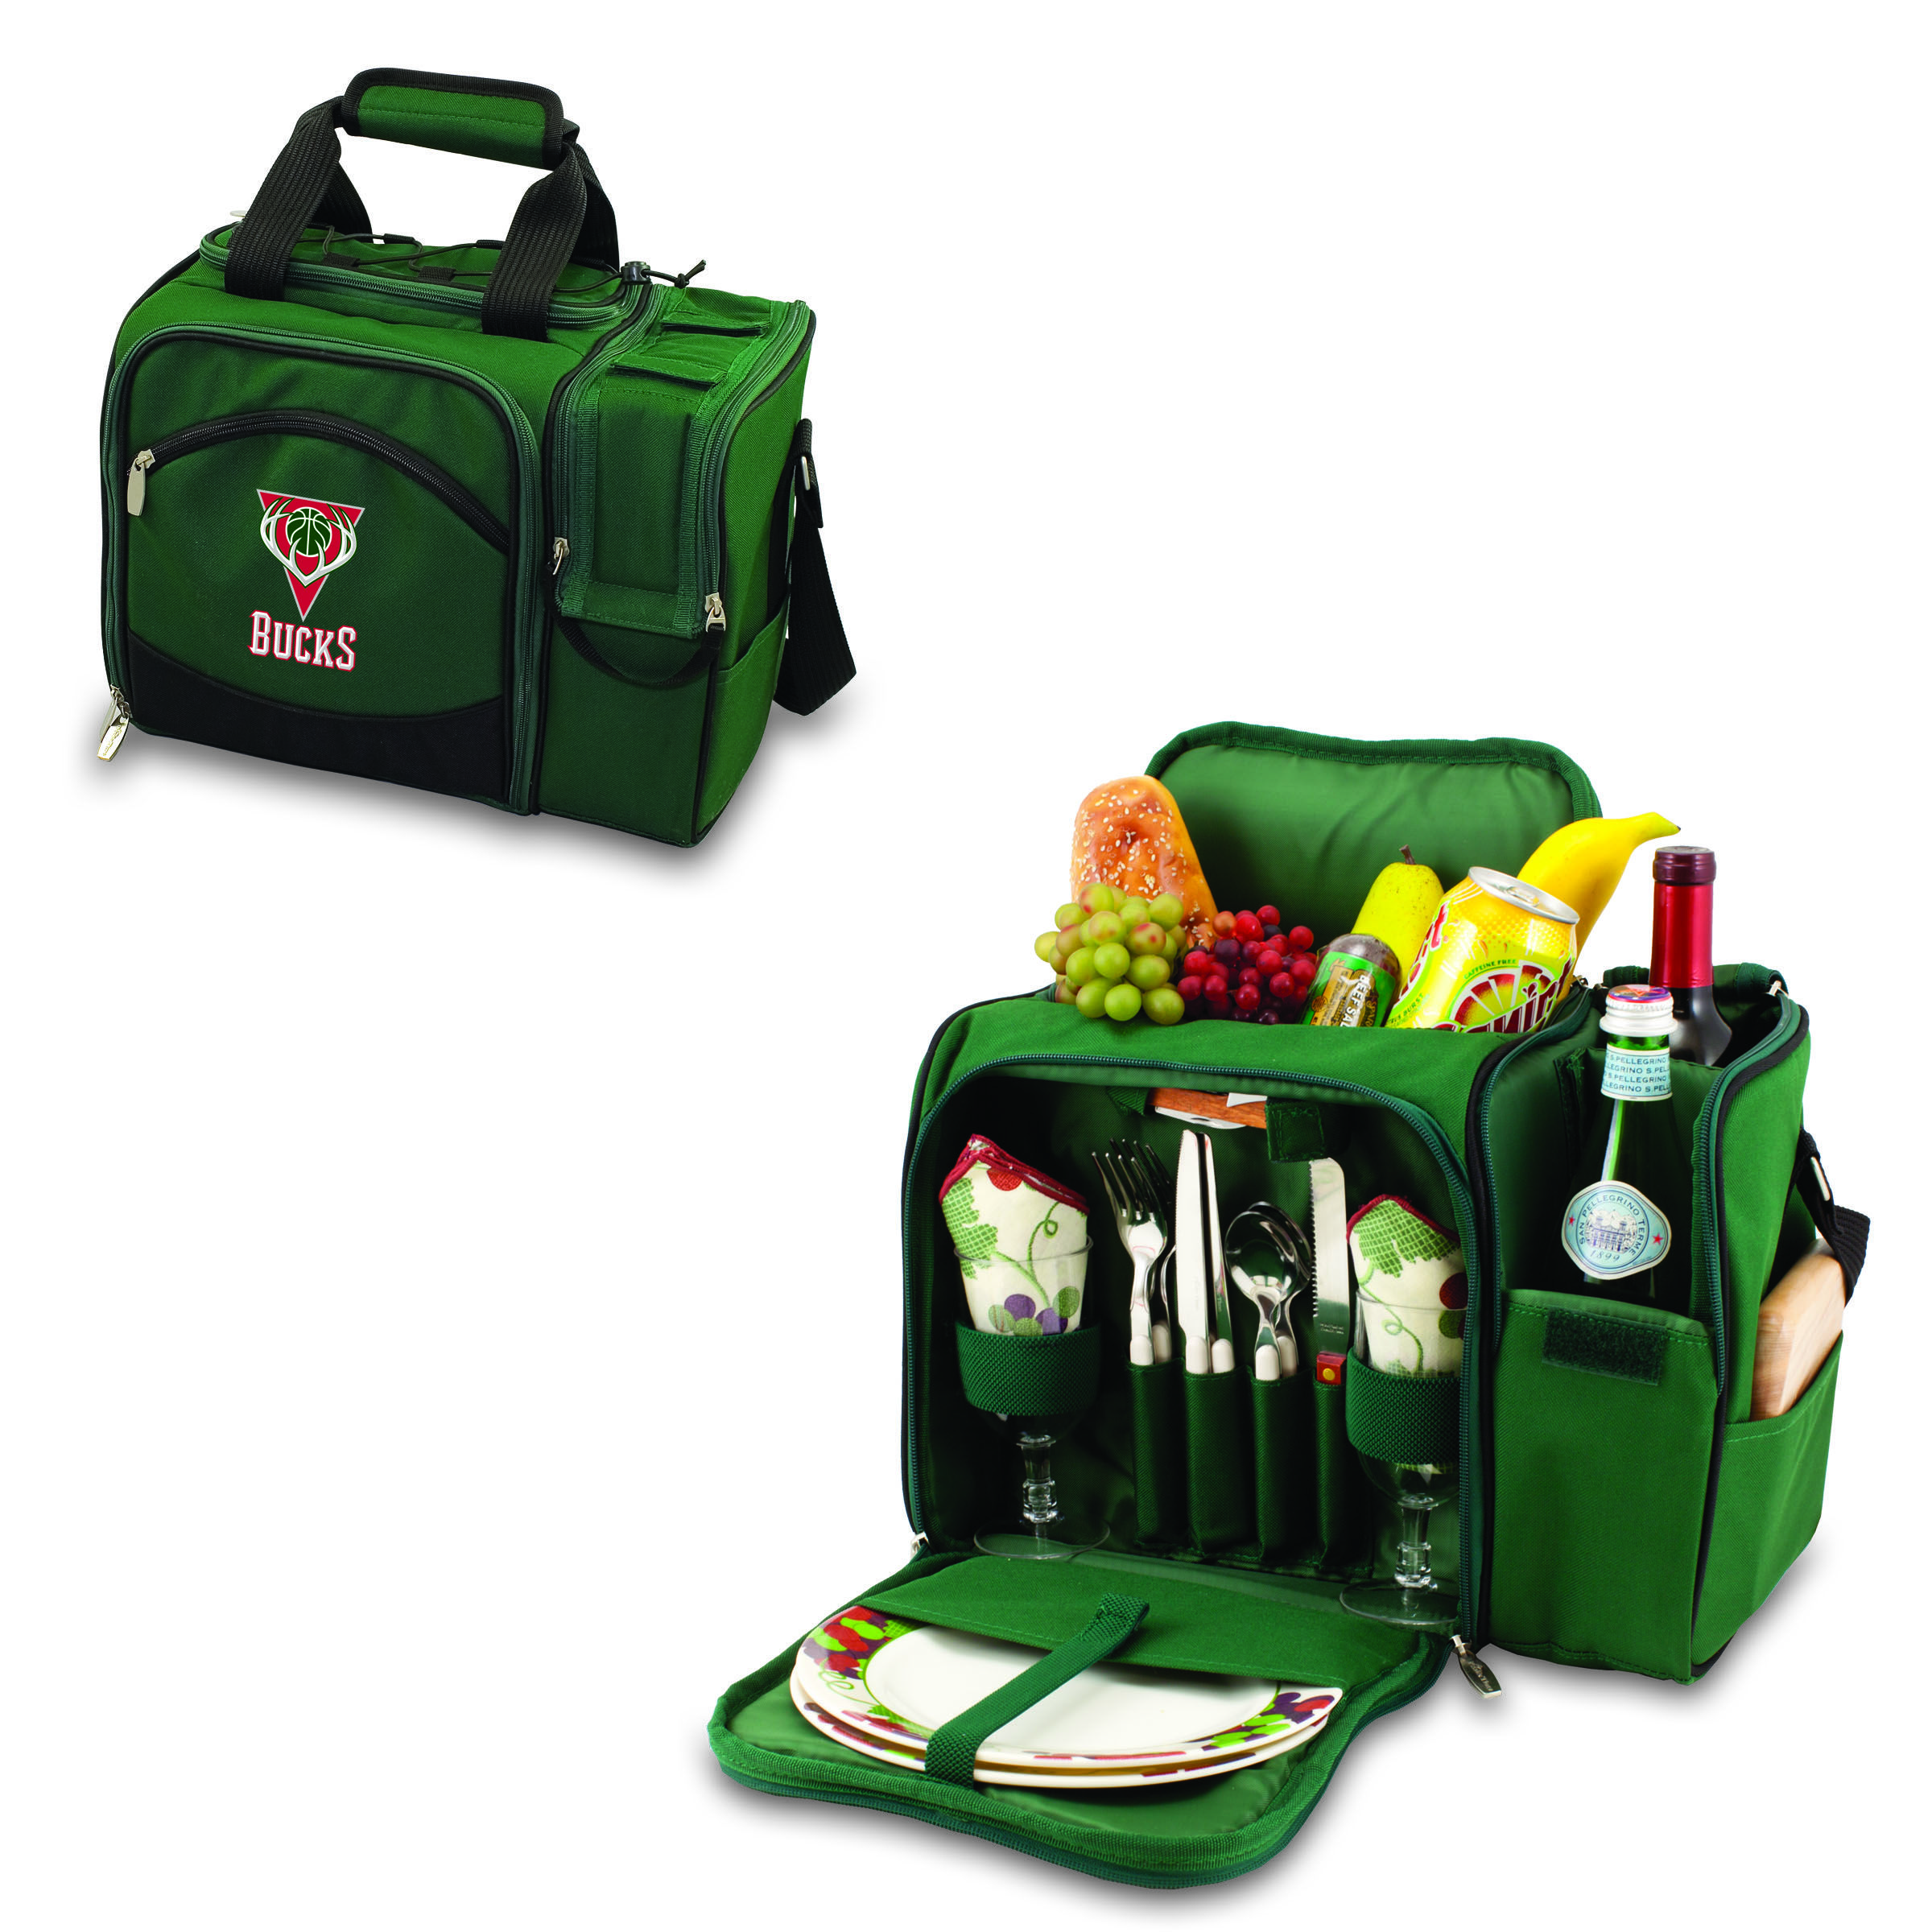 Whether you are going to the a tailgating party, concert or quite picnic for two, the Milwaukee Bucks Malibu cooler is for you!